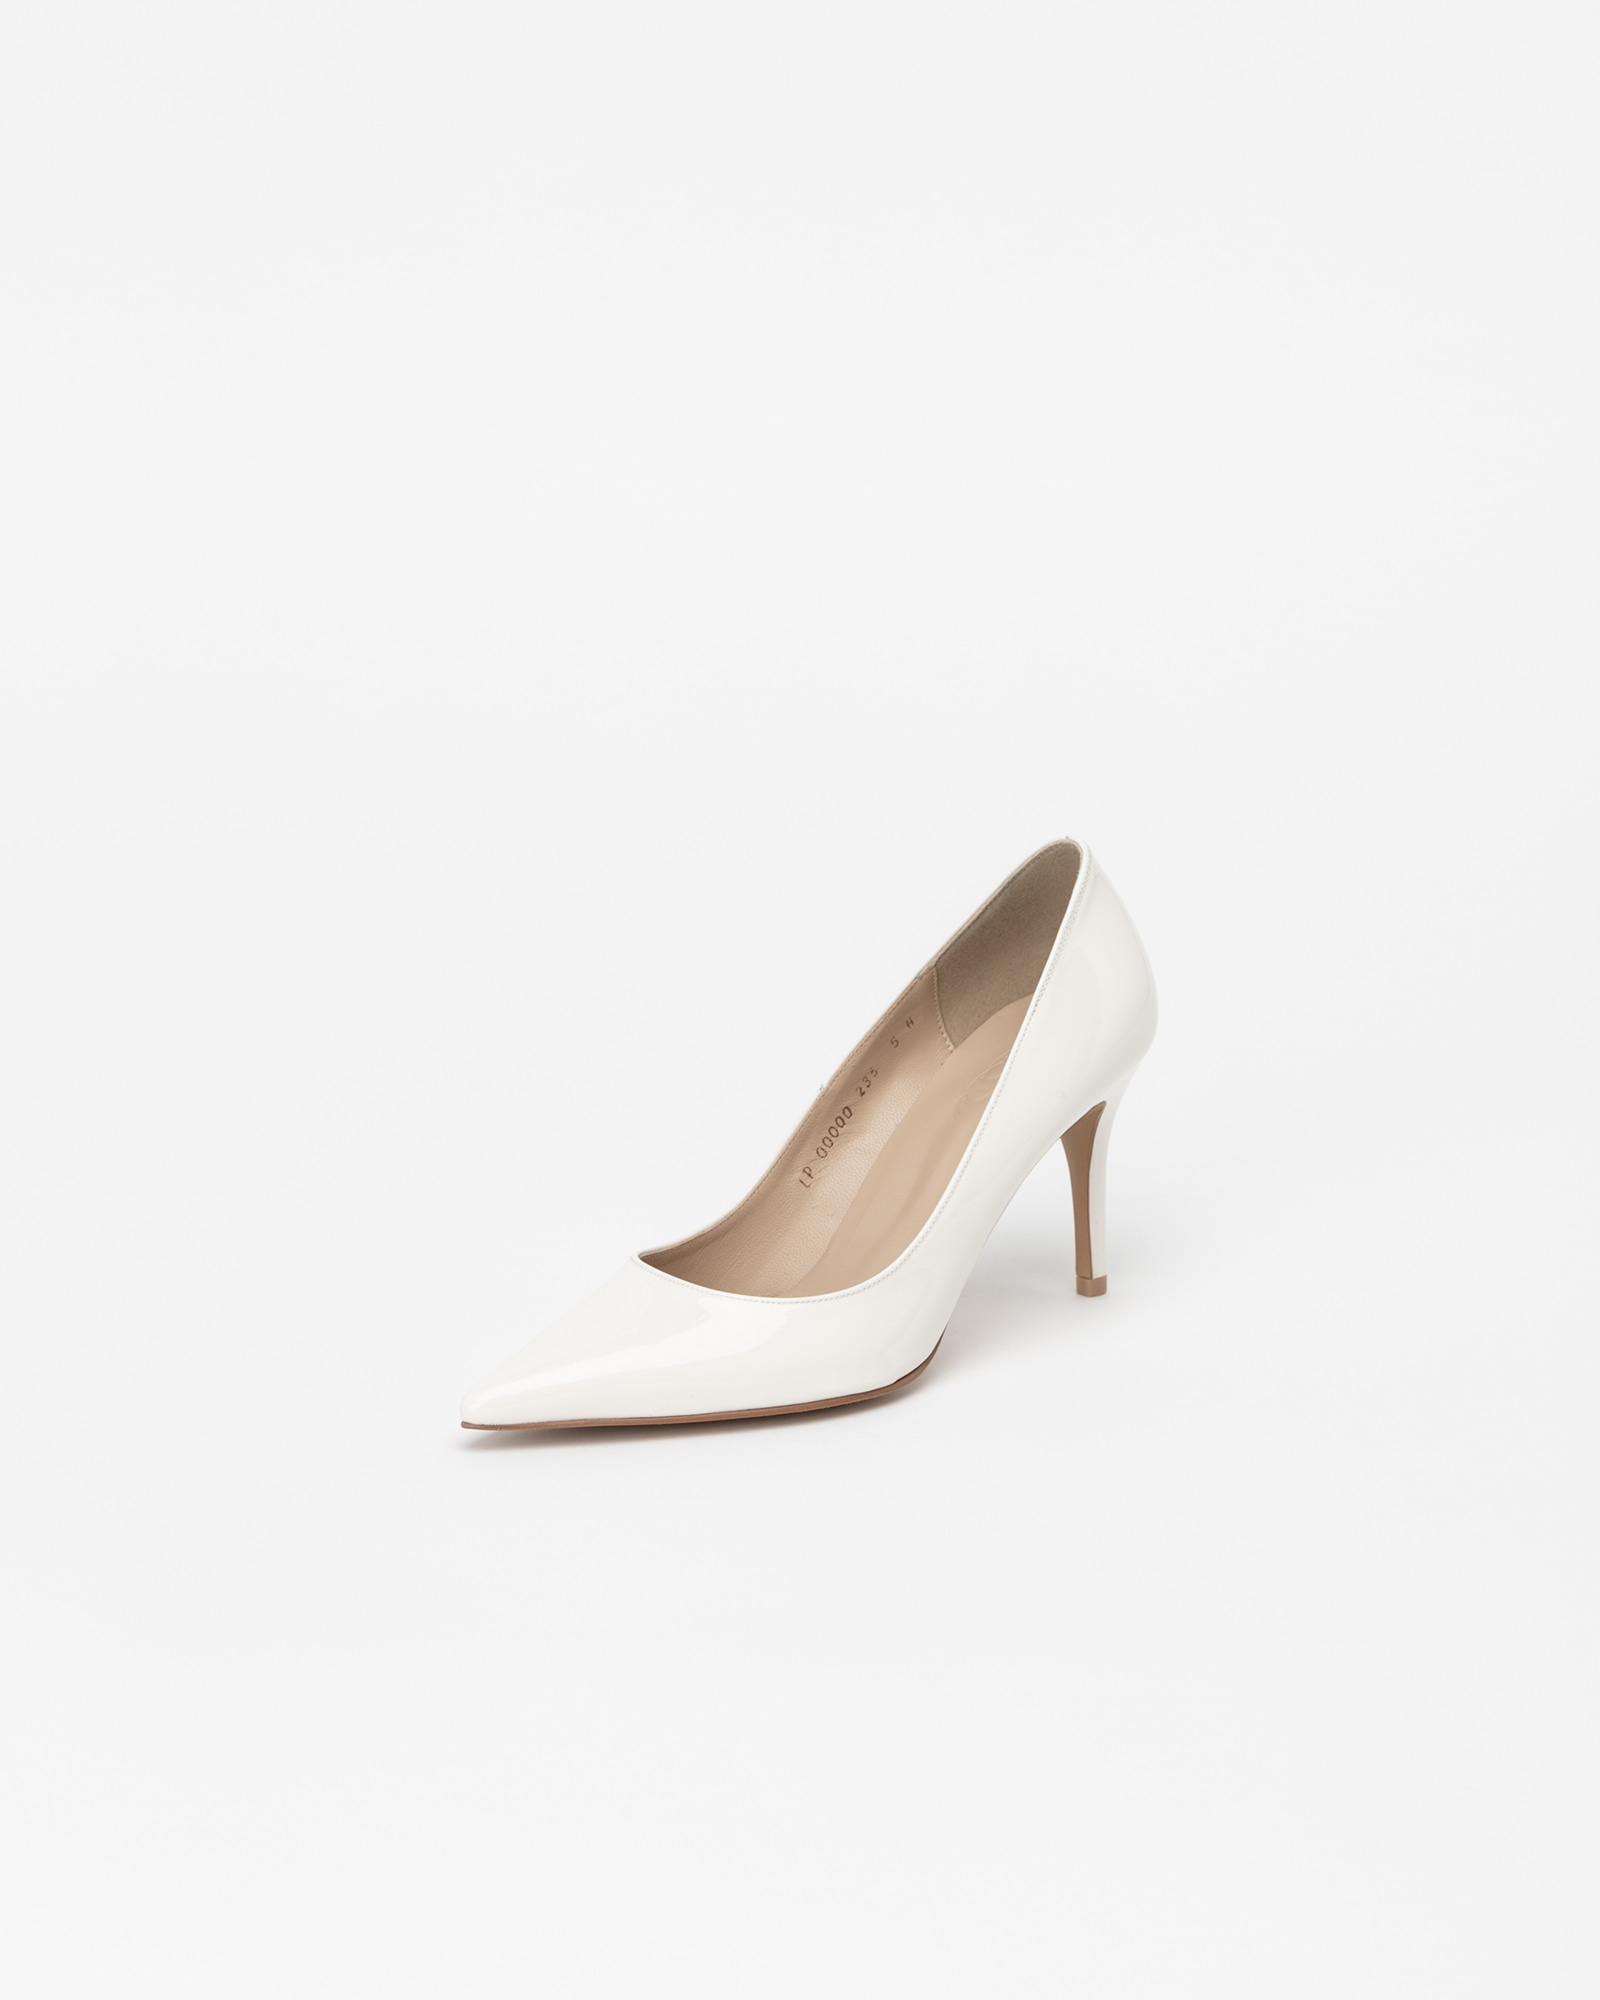 Chauffeur Stilletto Pumps in Milky White Patent